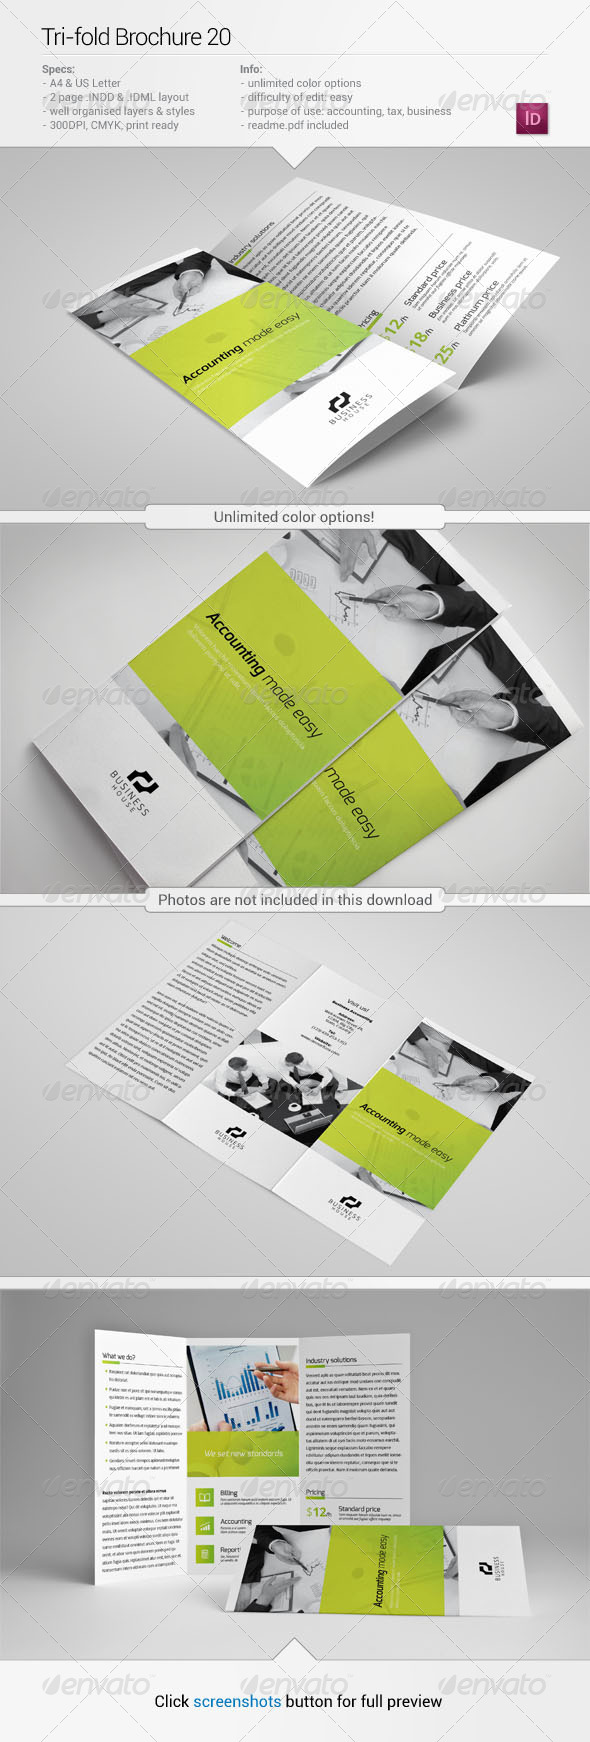 GraphicRiver Tri-Fold Brochure 20 5978580